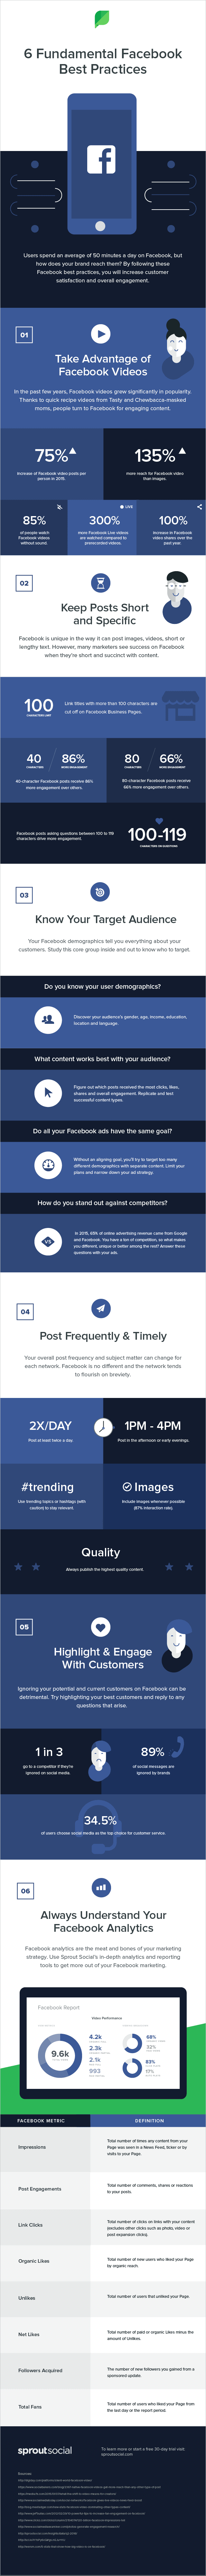 Learn more about Facebook and some key best practices in this great infographic!